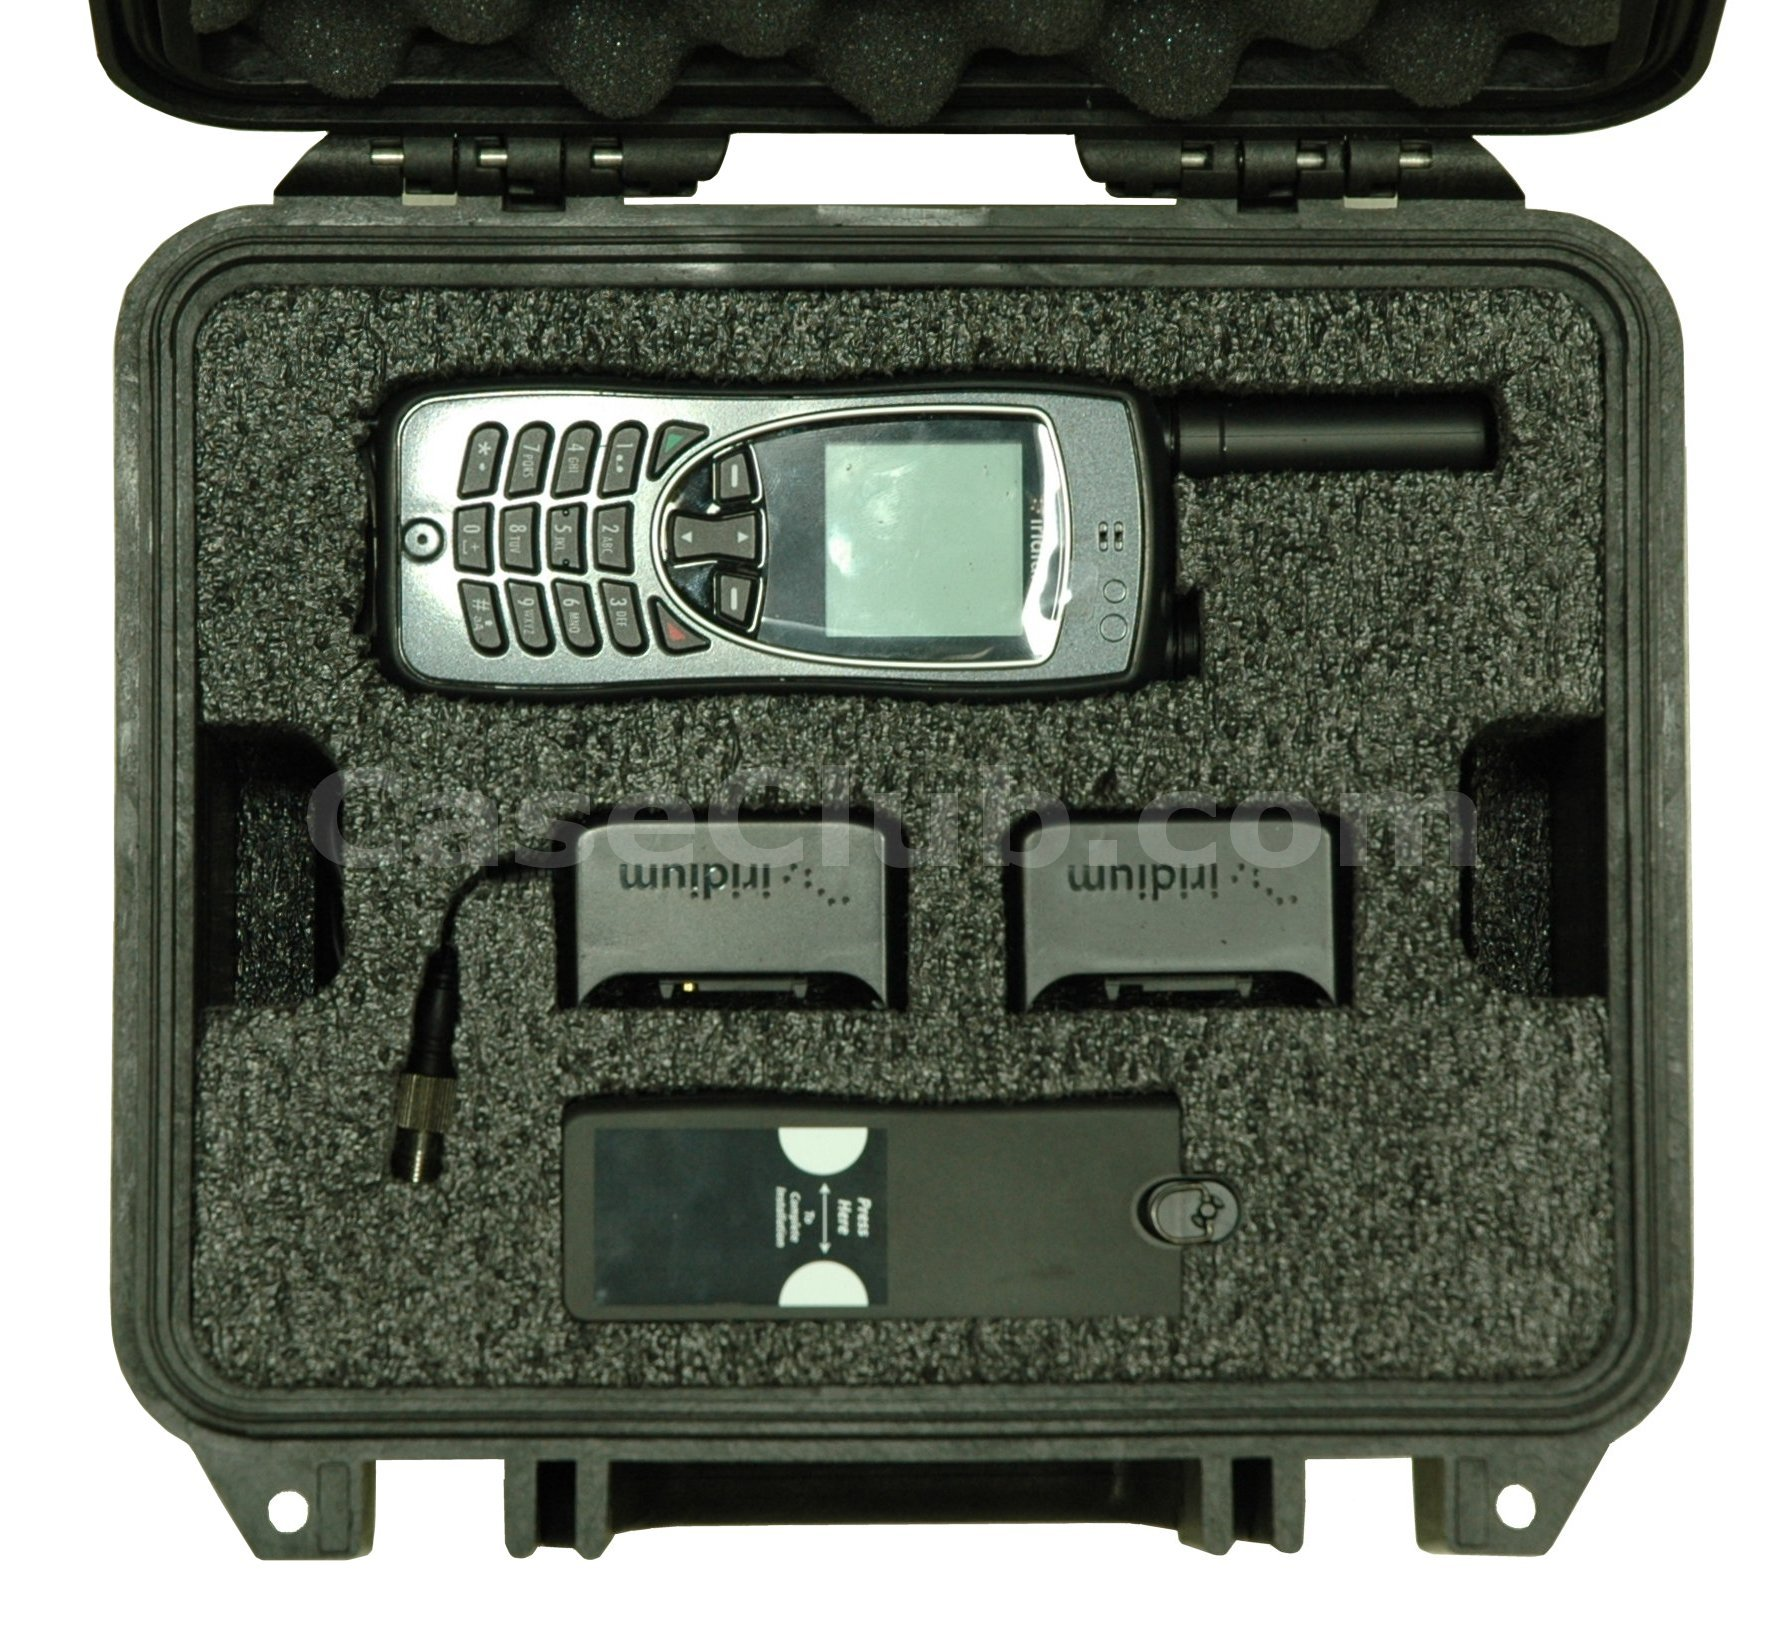 Pelican™ 1300 Case Custom Foam Example: Iridium Extreme Satellite Phone Case